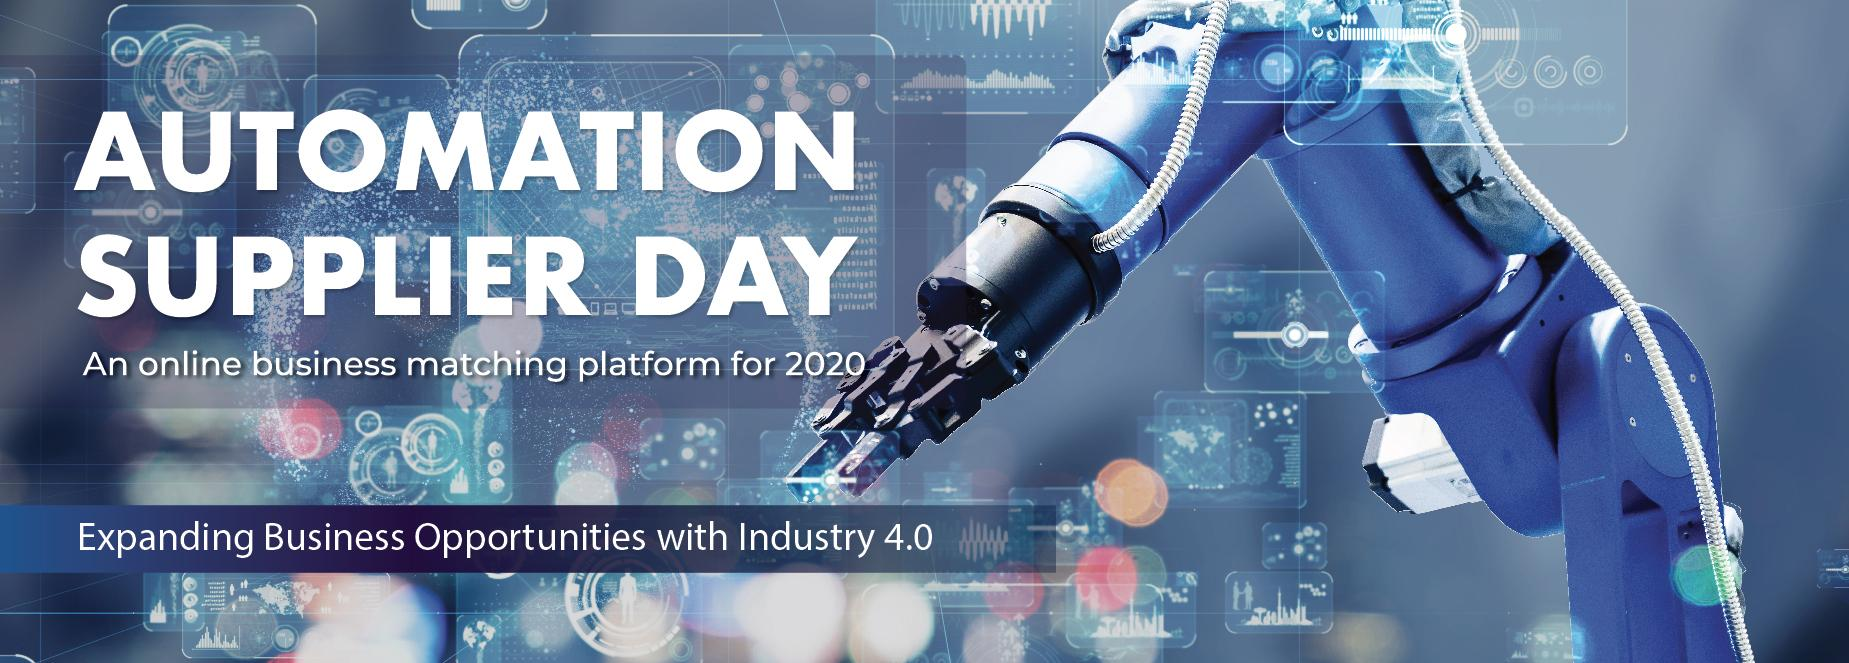 Automation Supplier Day